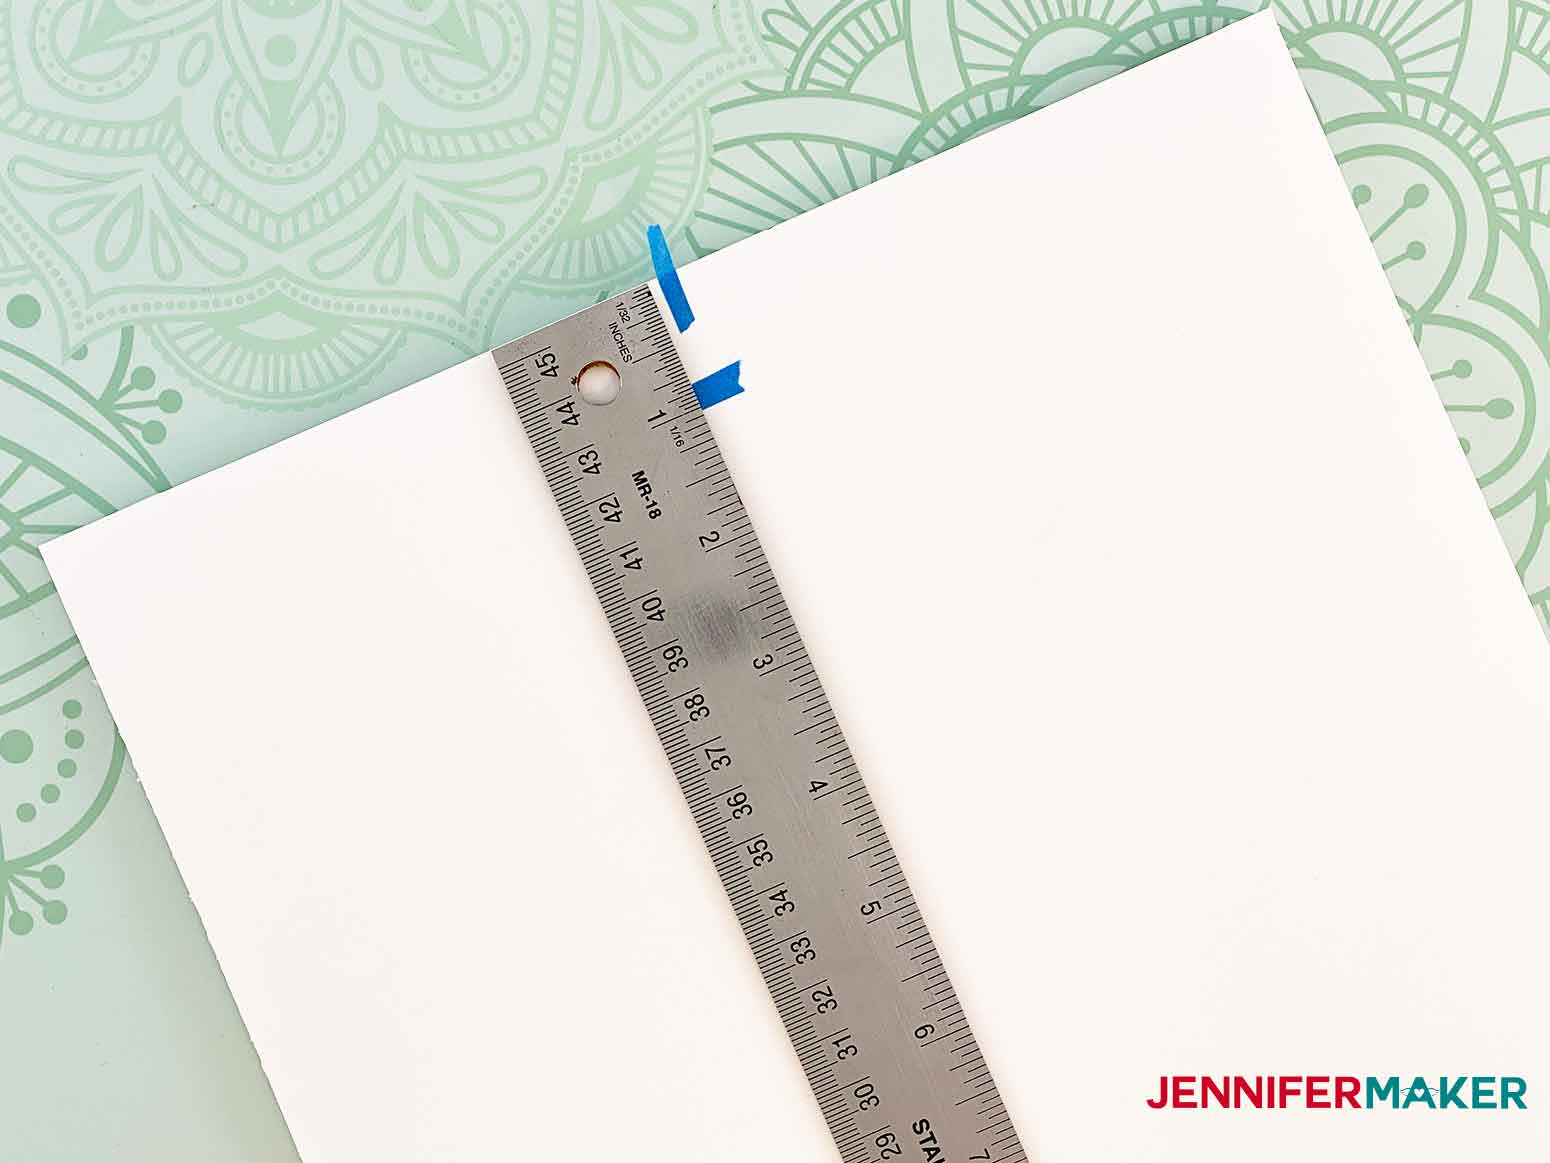 Find the center and measure one inch down on the foam core for the personalized unicorn frame